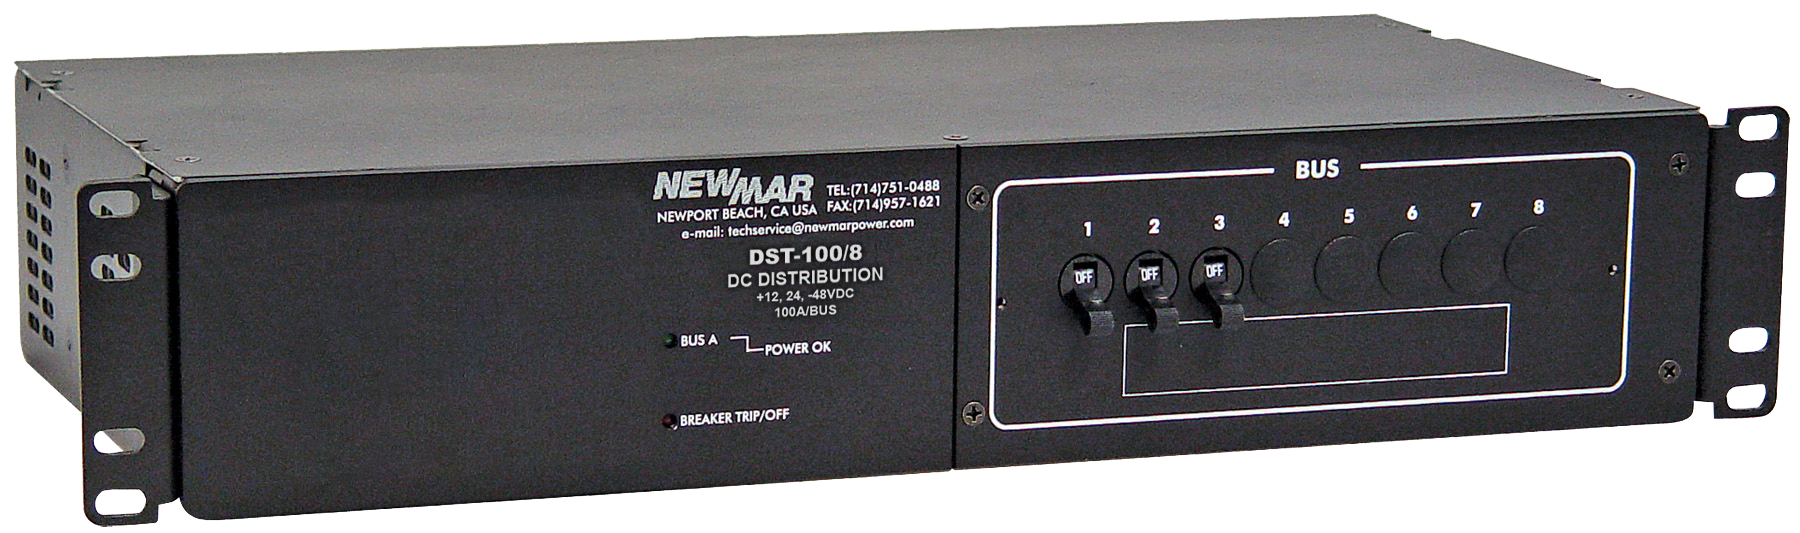 Rack mount DC Circuit Breaker panel, 100 amp, 8 Circuit, model DST-100/8, for Telecom, Public Safety, Broadband and industrial applications image by Newmar Powering the Network